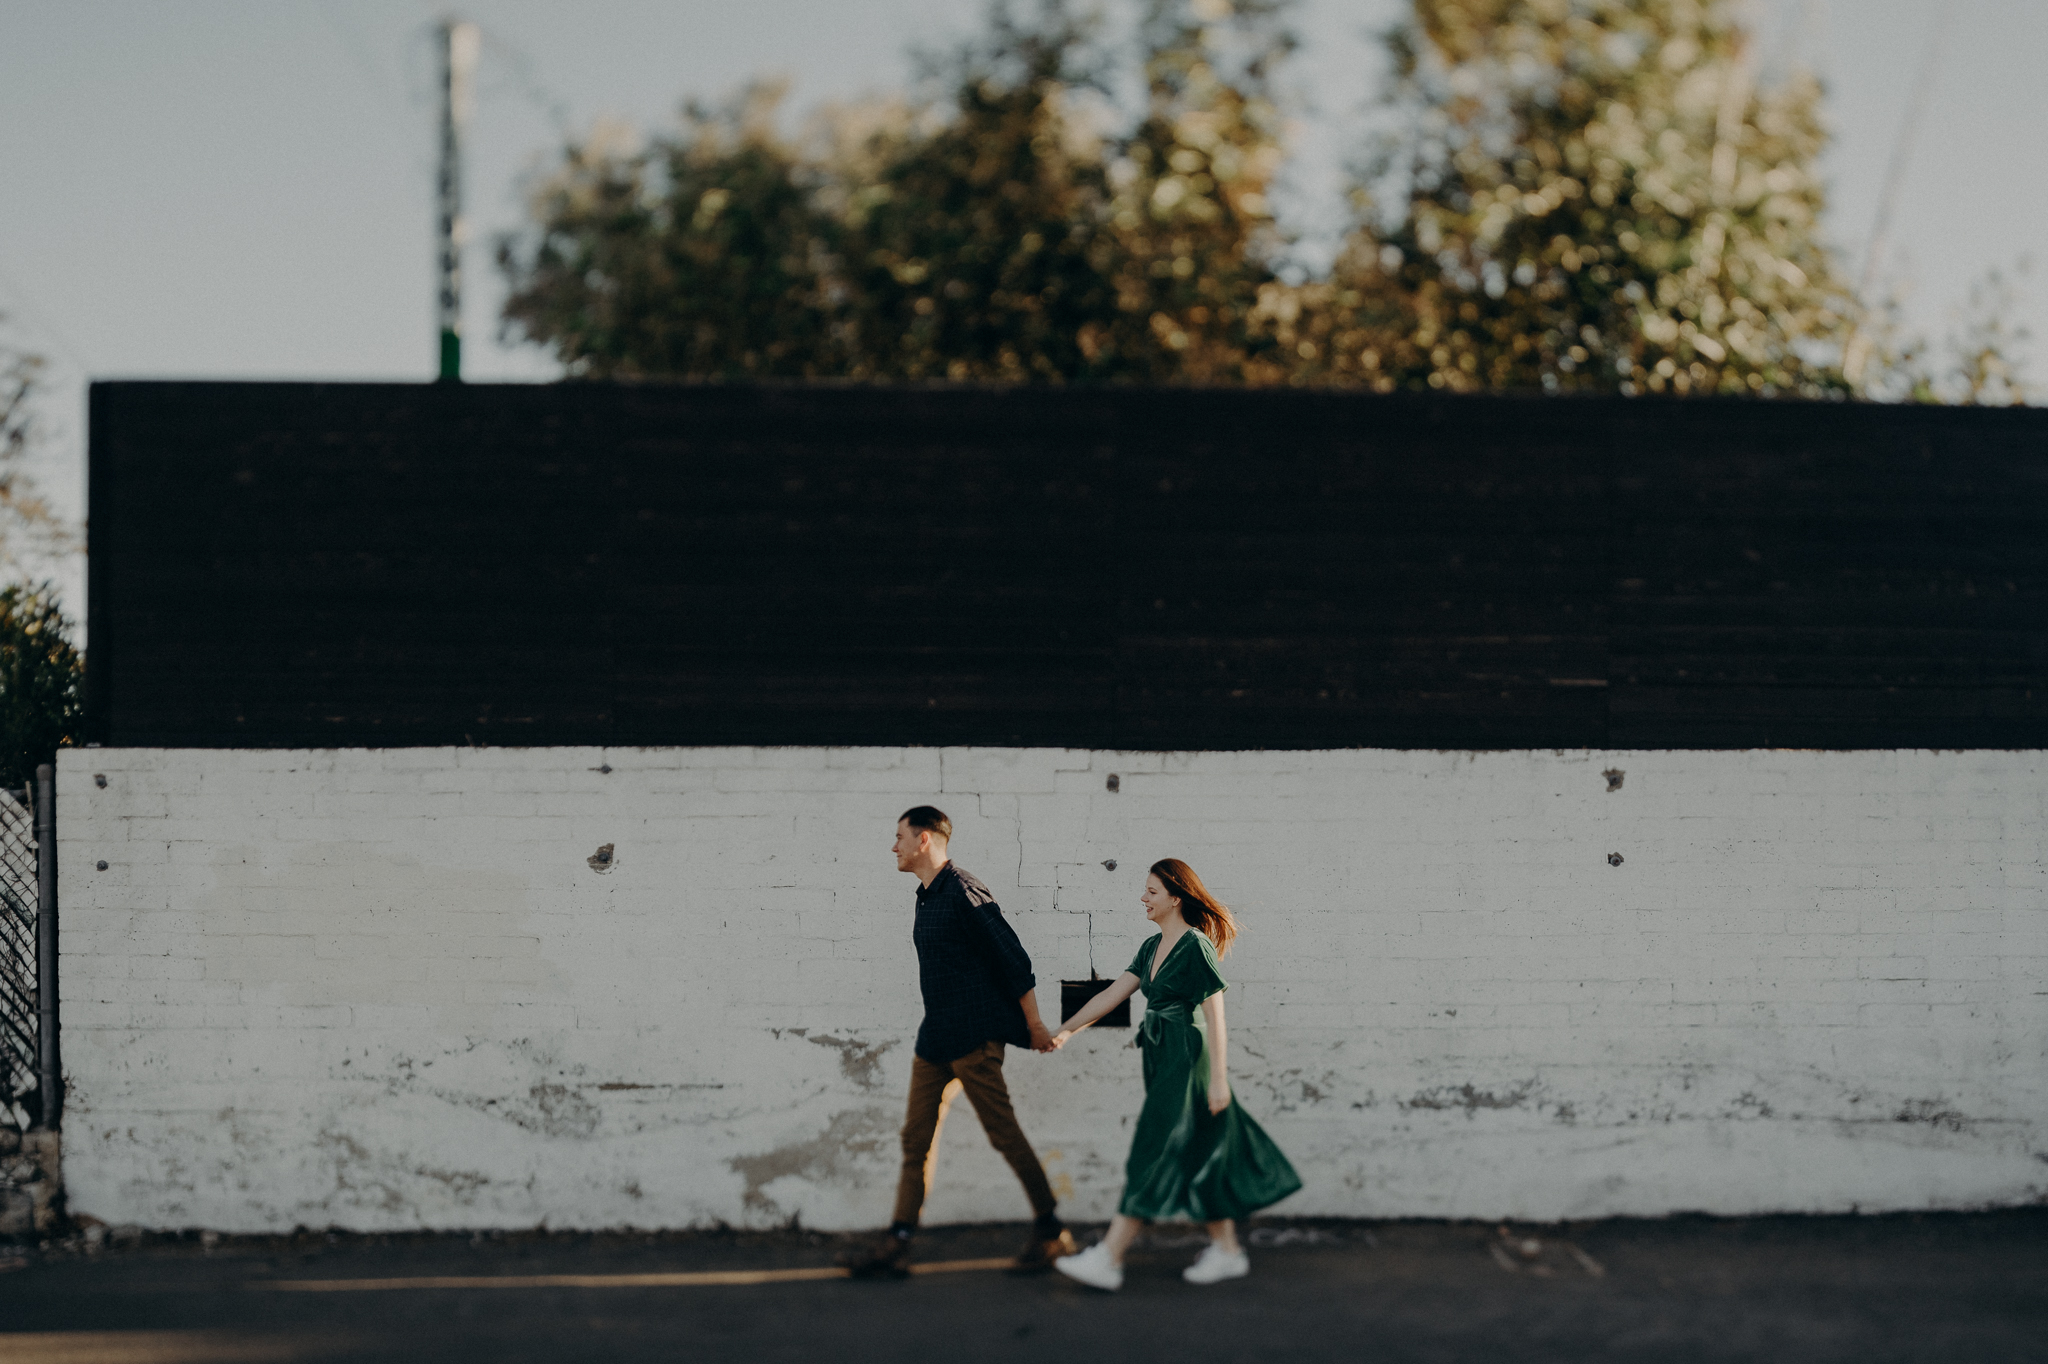 Santa Monica Engagement Photos - Wedding Photographer in Los Angeles - IsaiahAndTaylor.com -028.jpg